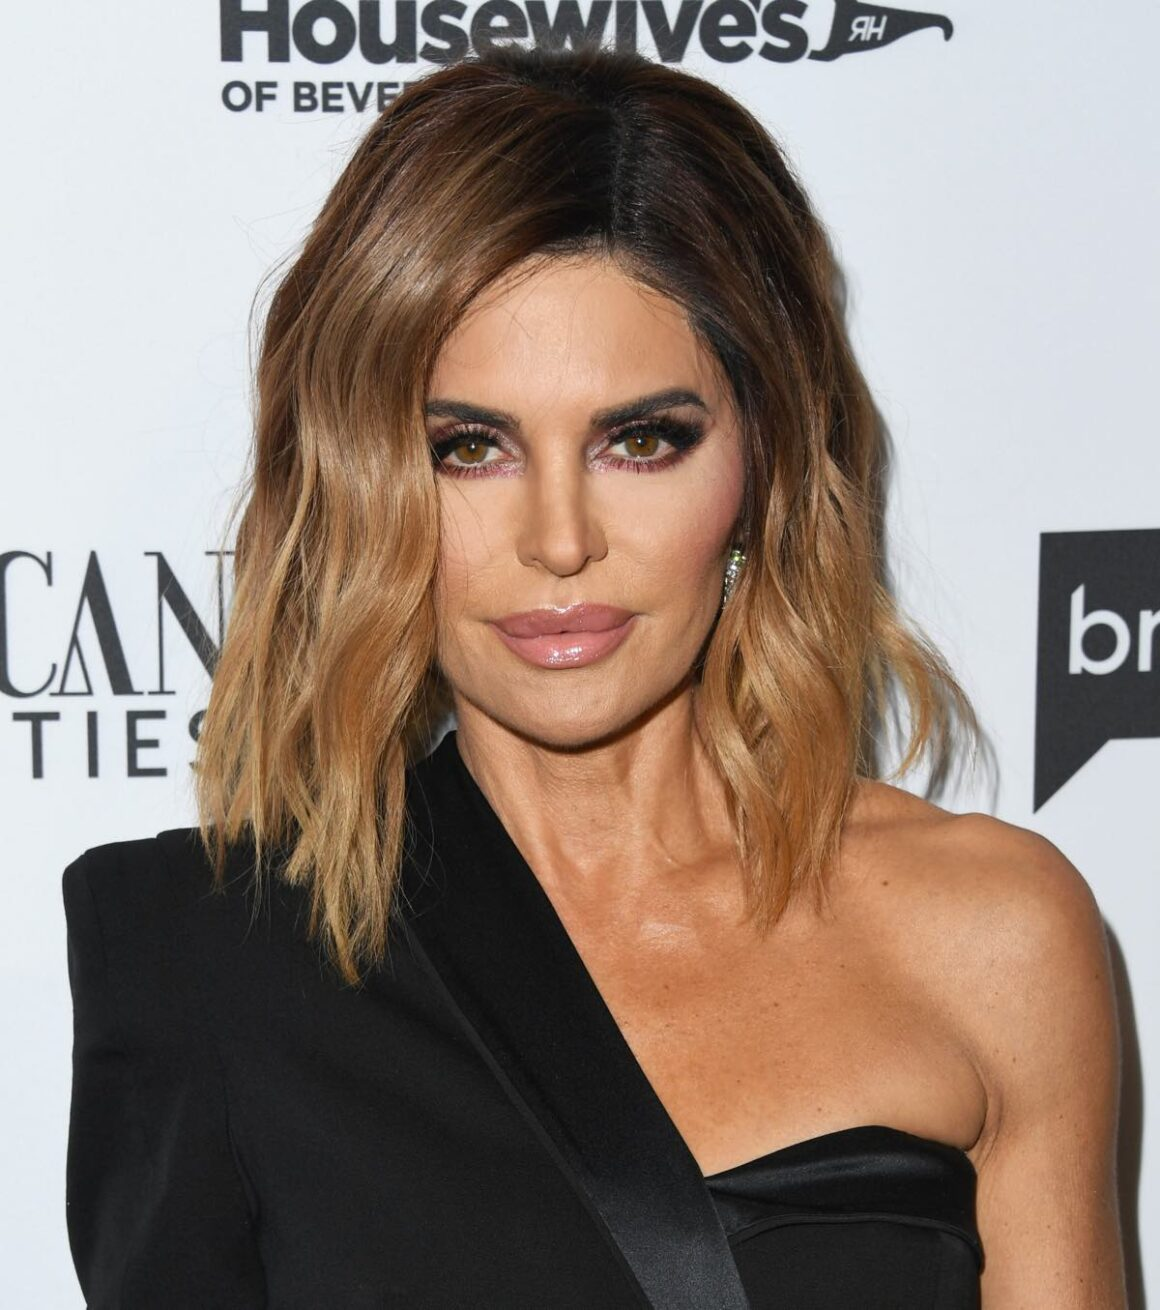 """Lisa Rinna Bravo's Premiere Party For """"The Real Housewives Of Beverly Hills"""" Season 9 And """"Mexican Dynasties"""" - Arrivals"""